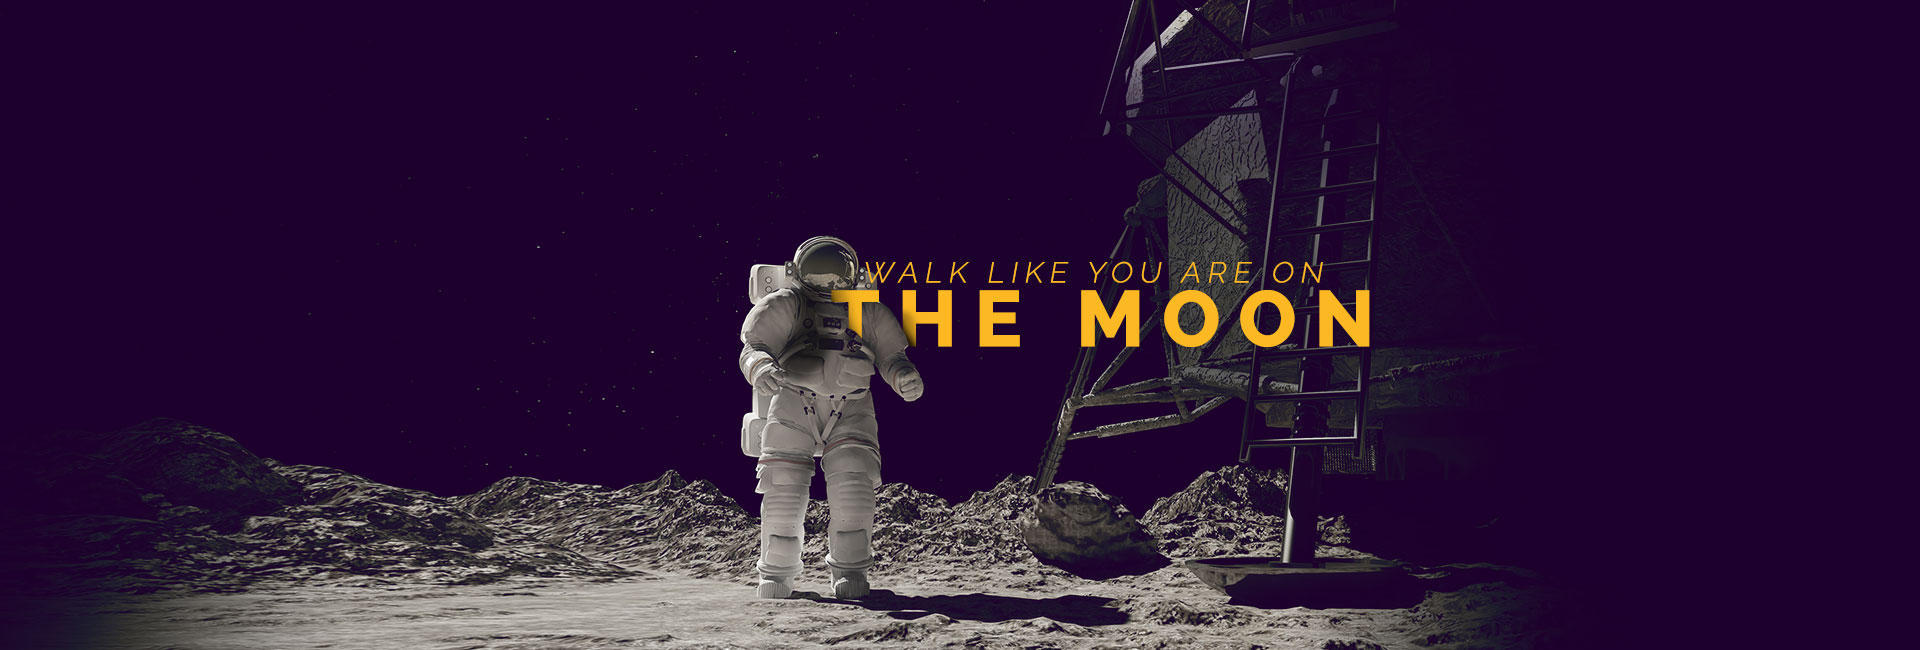 Walk like you are on the moon